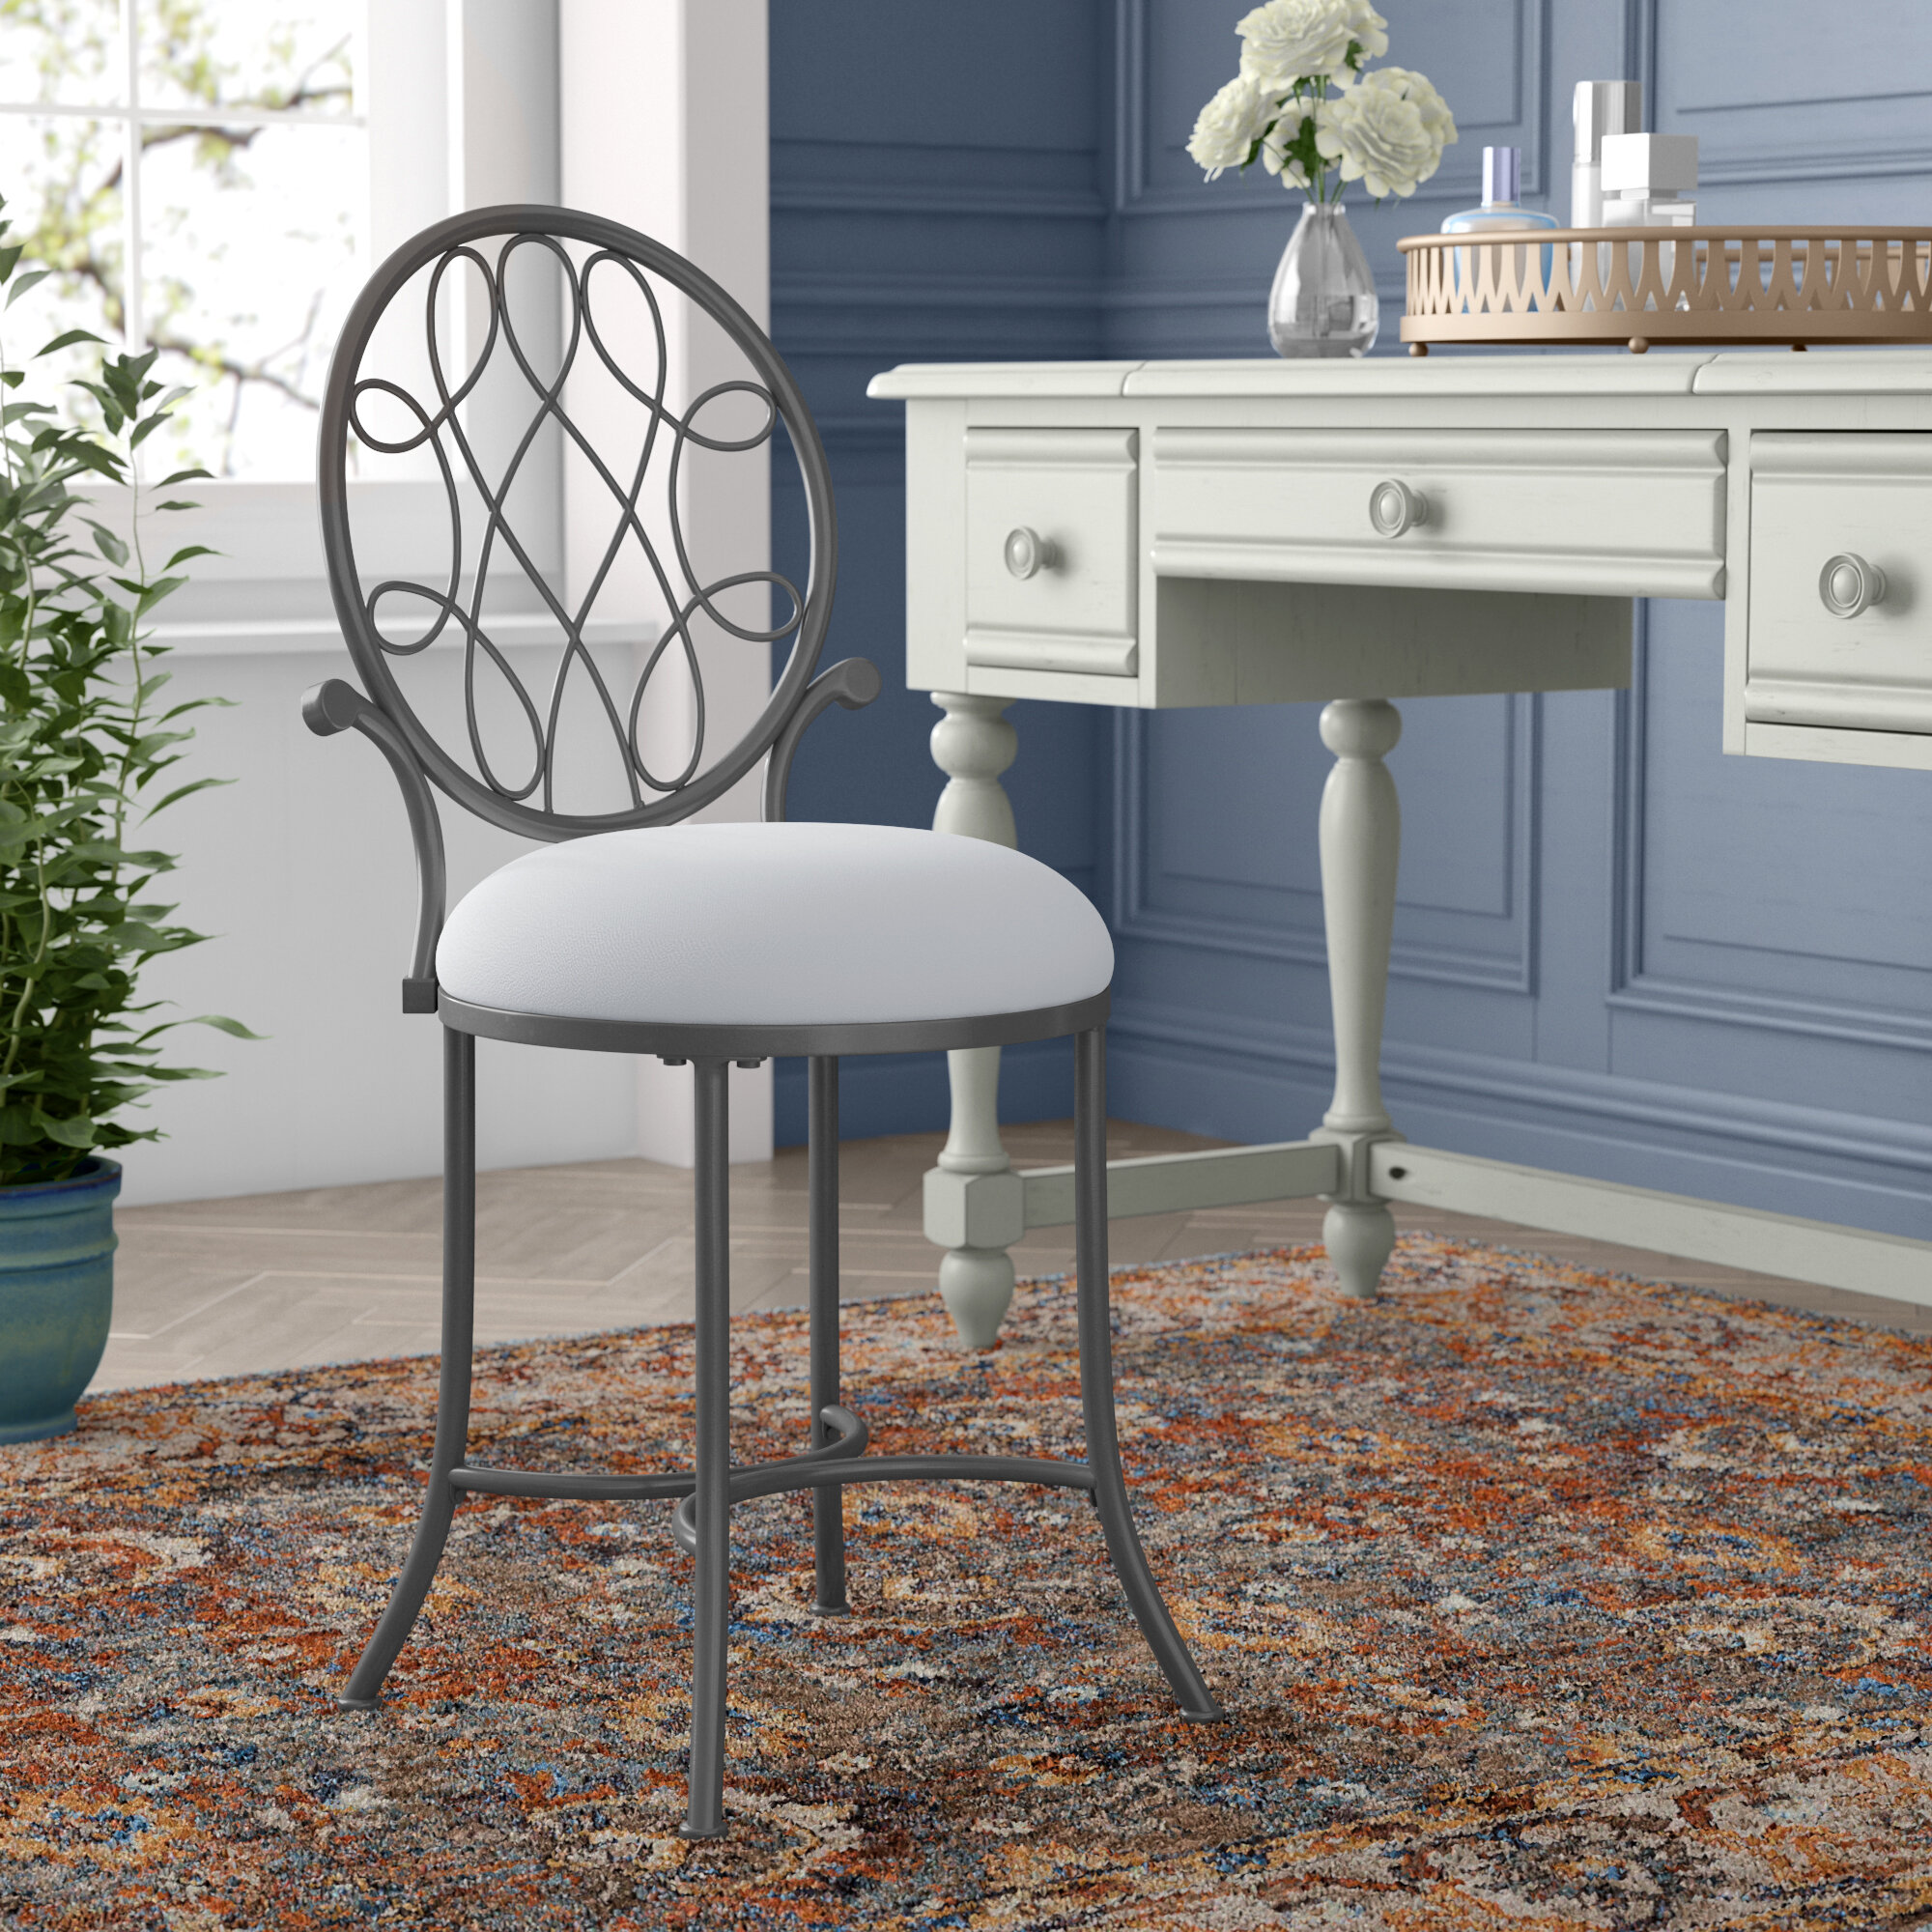 size hillsdale full upholstered chair chairs makeup furniture dutton photos walmart wheels chrome awesome stool of ideas swivel bathroom stools vanity amazon